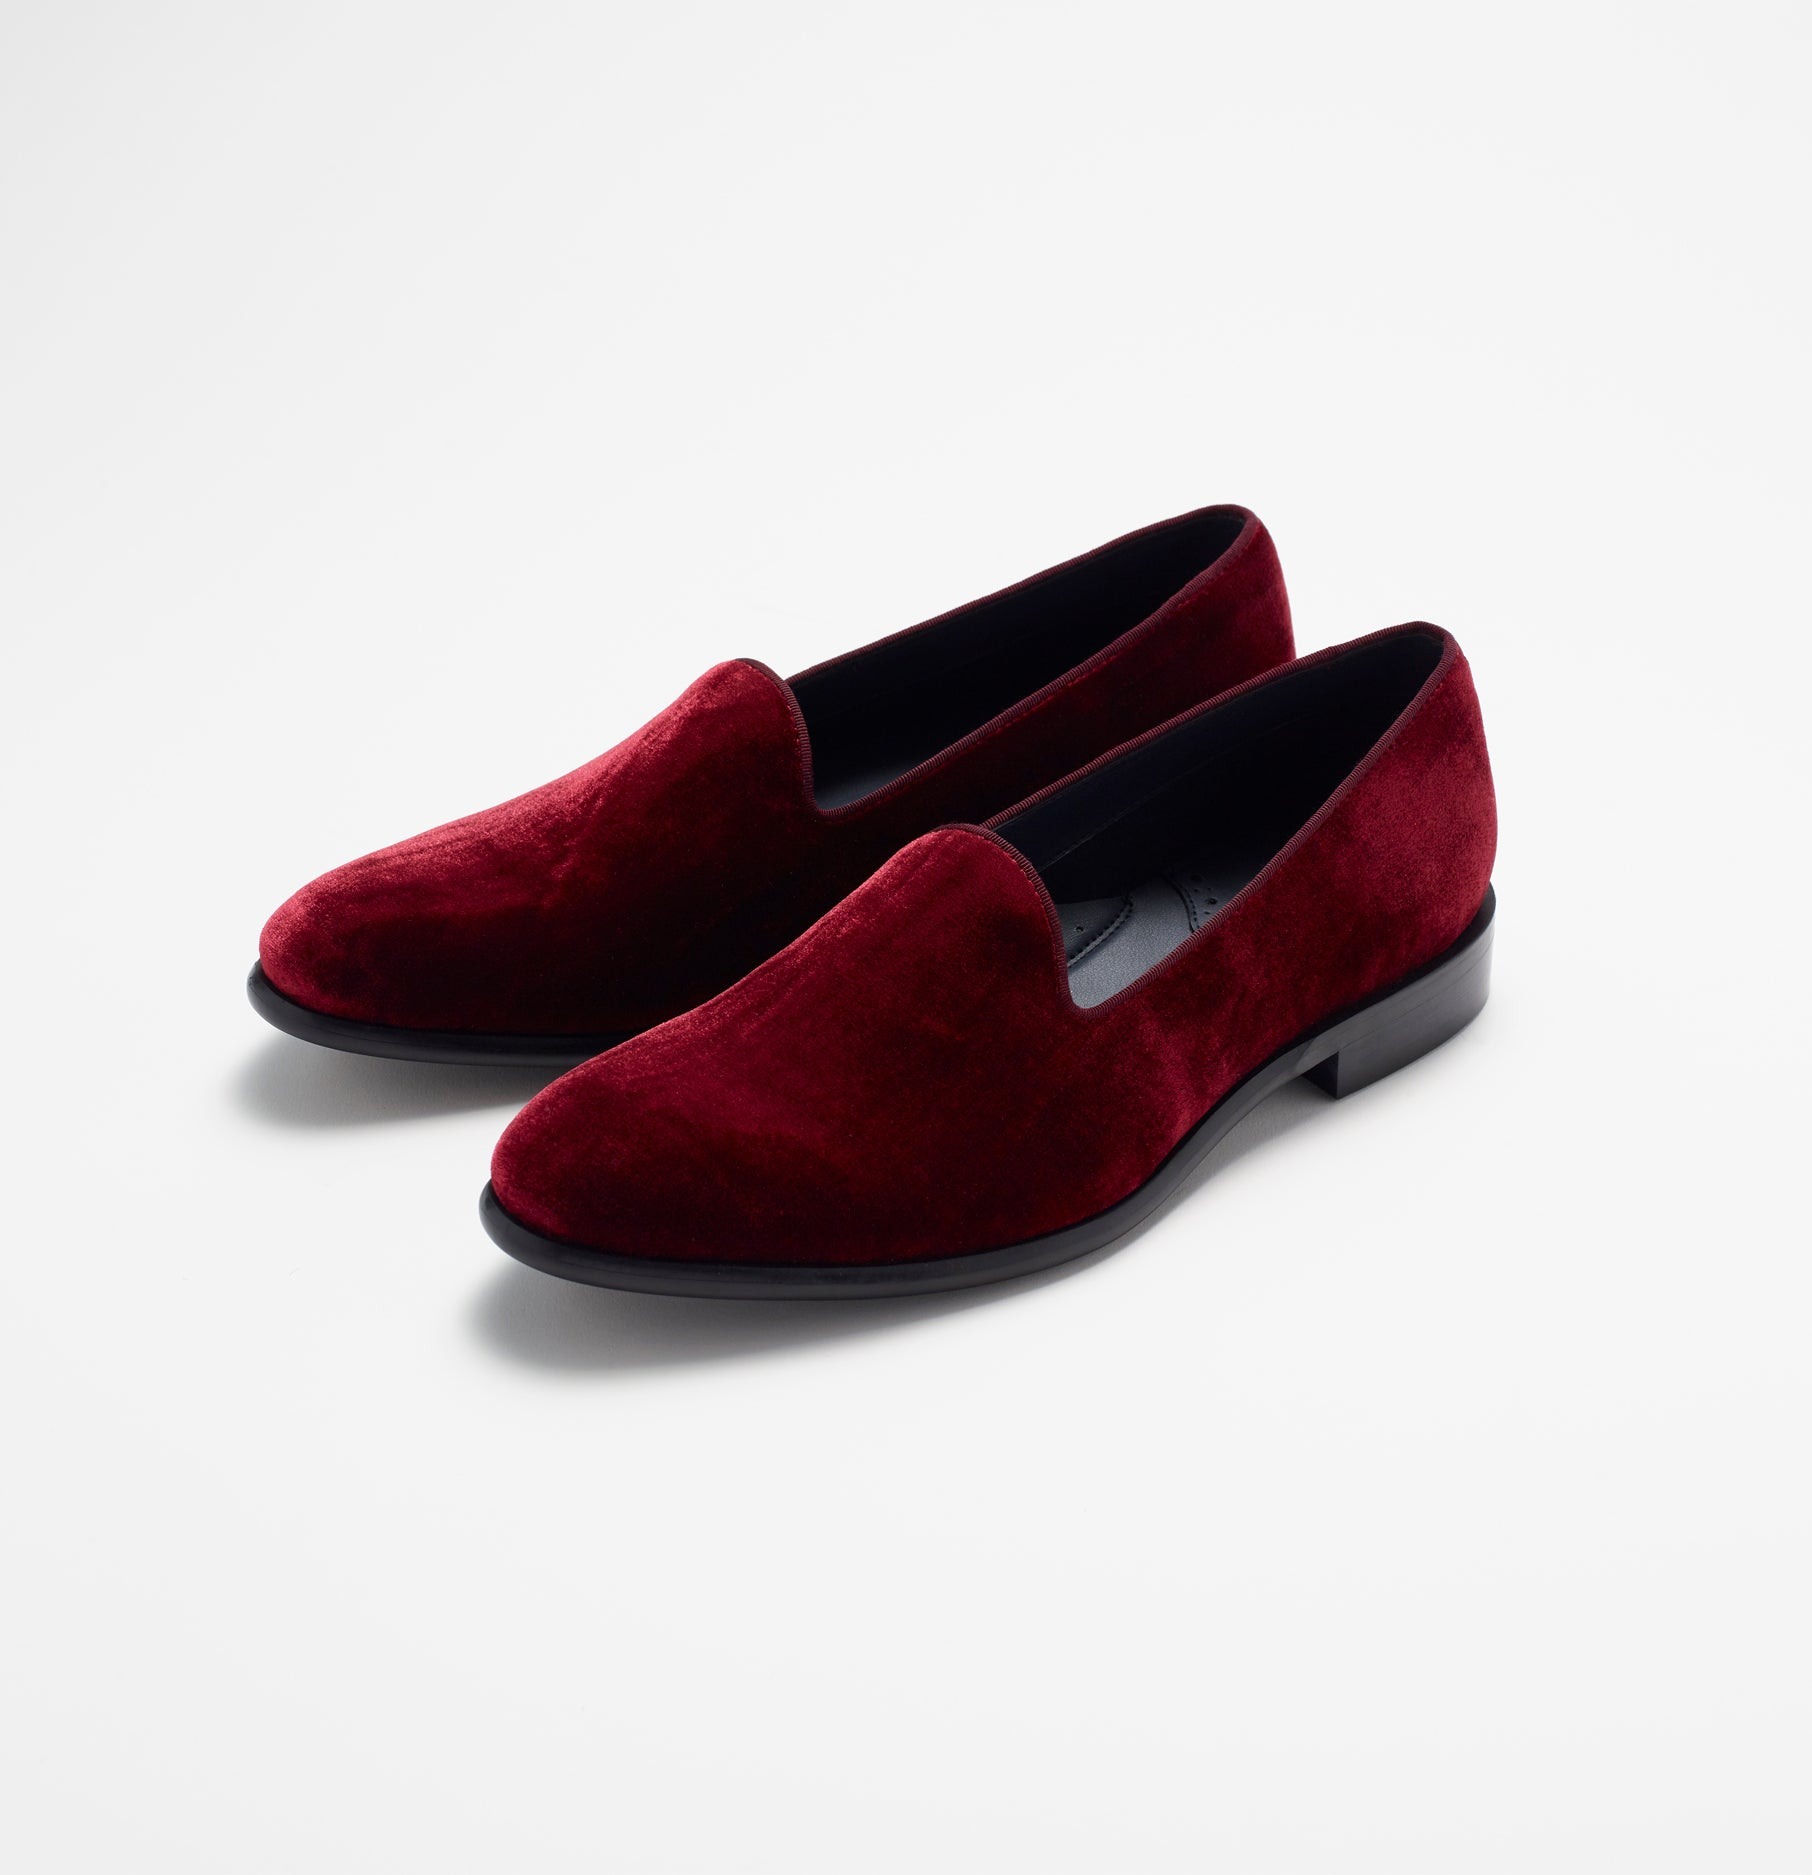 most reliable hoard as a rare commodity search for original Burgundy Velvet Loafers